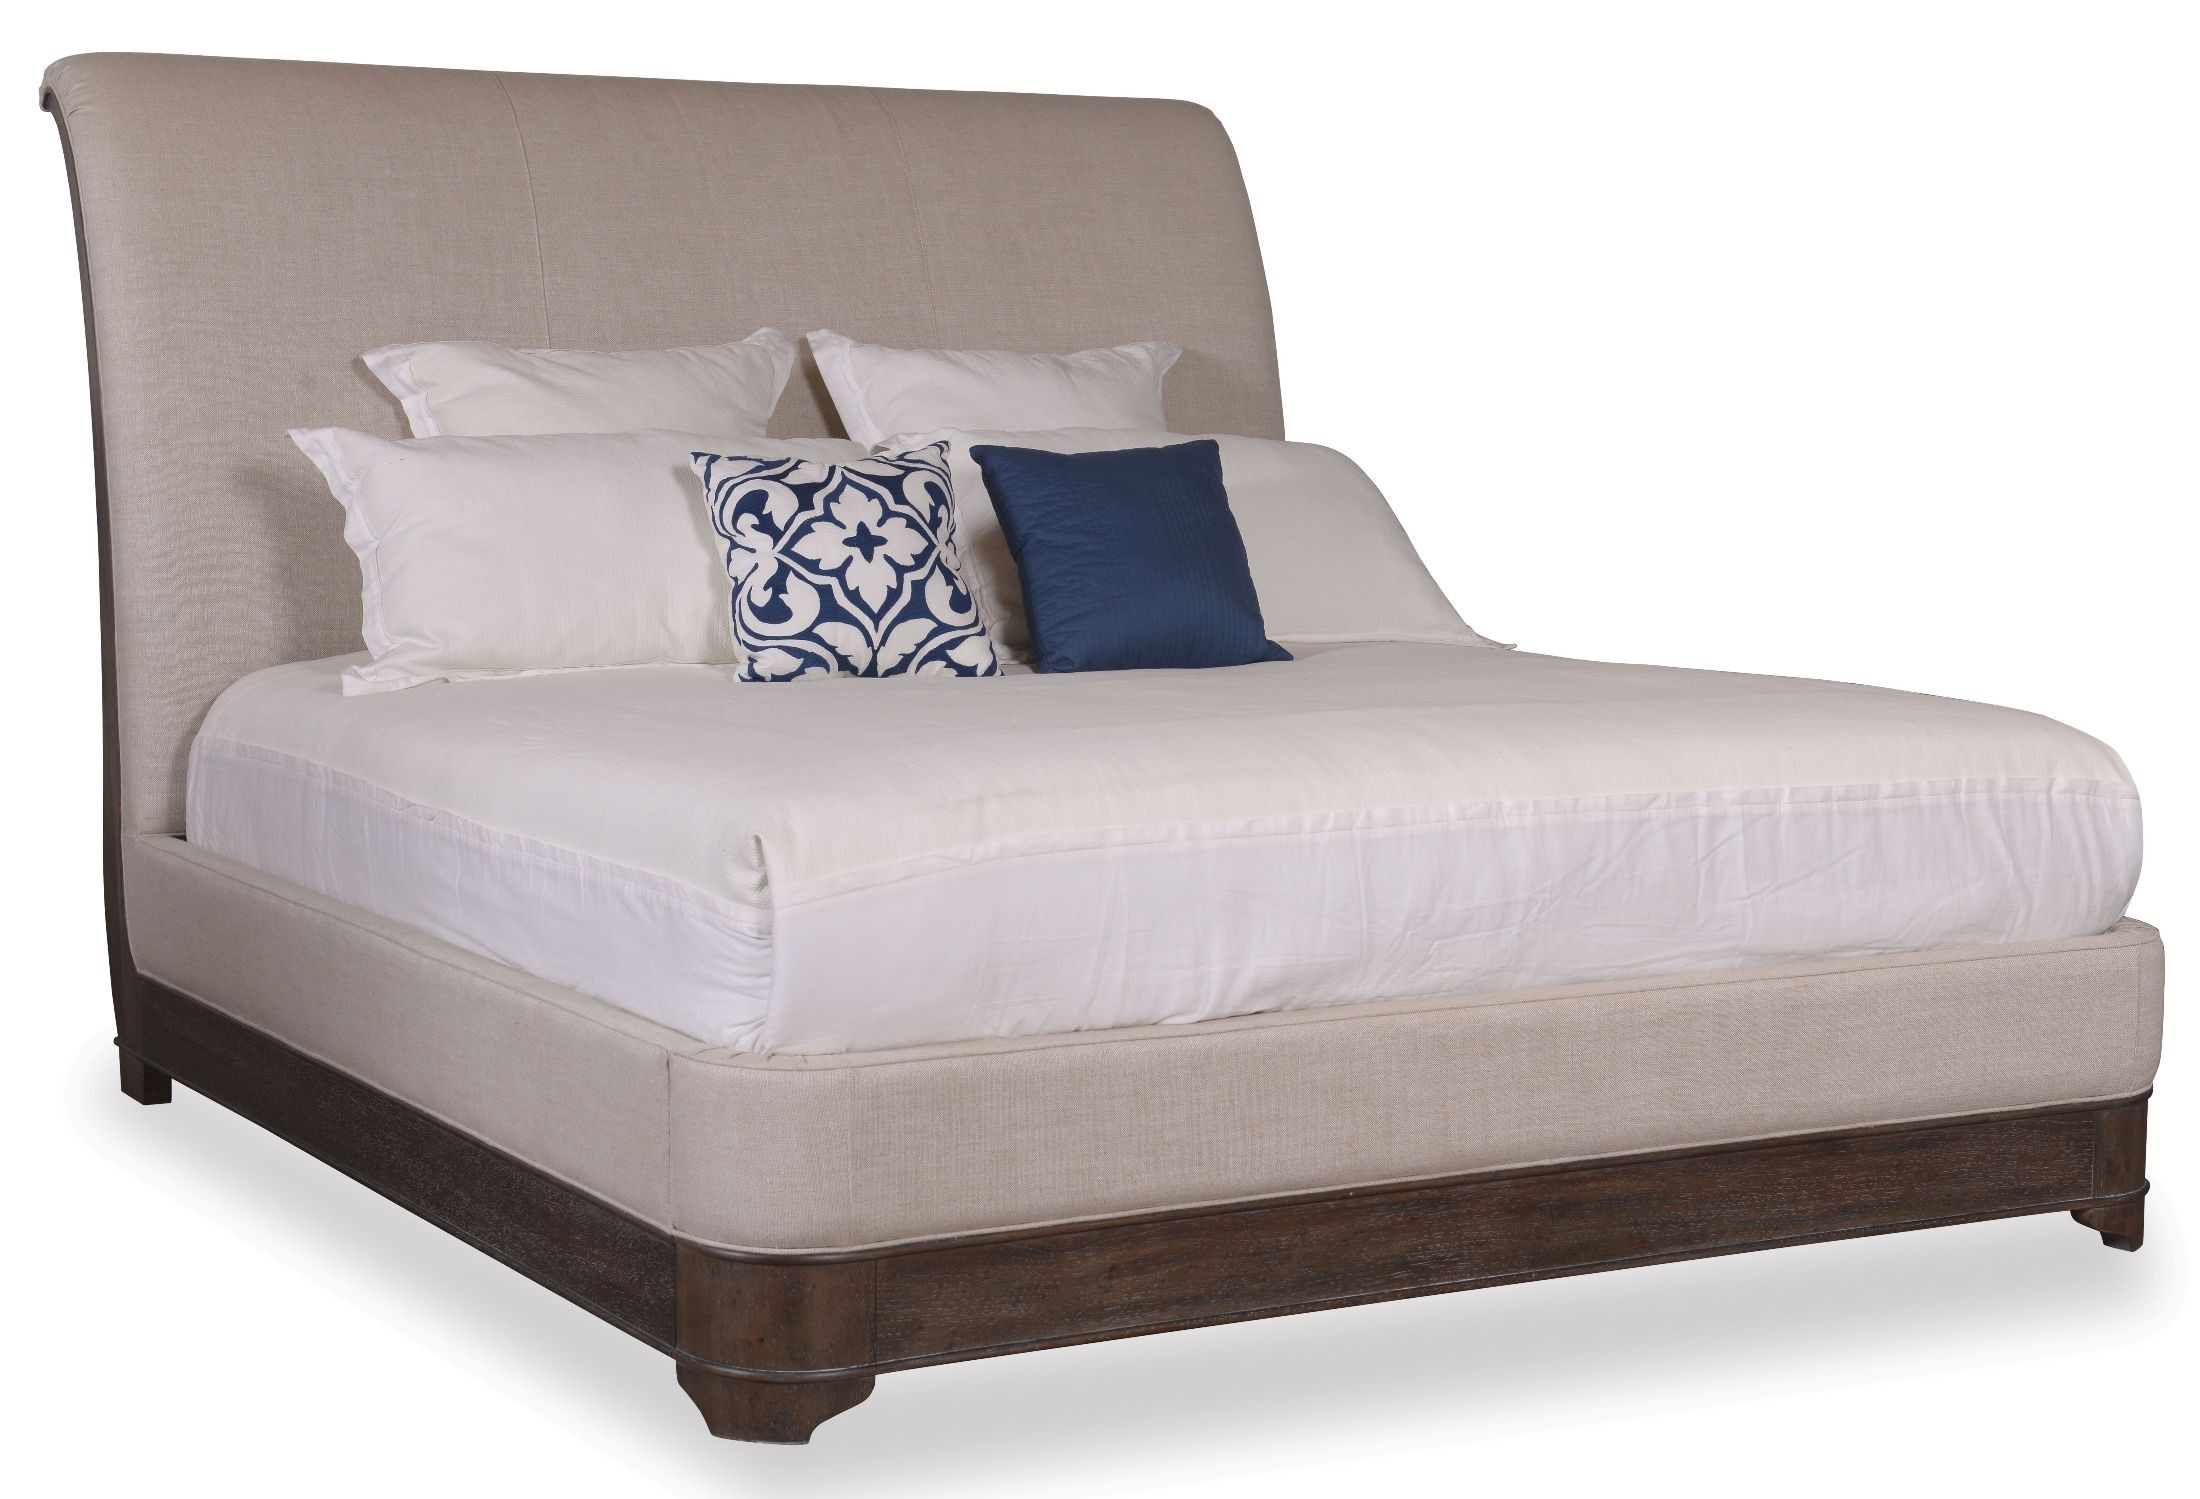 St Germain King Upholstered Sleigh Bed 215156 1513fb